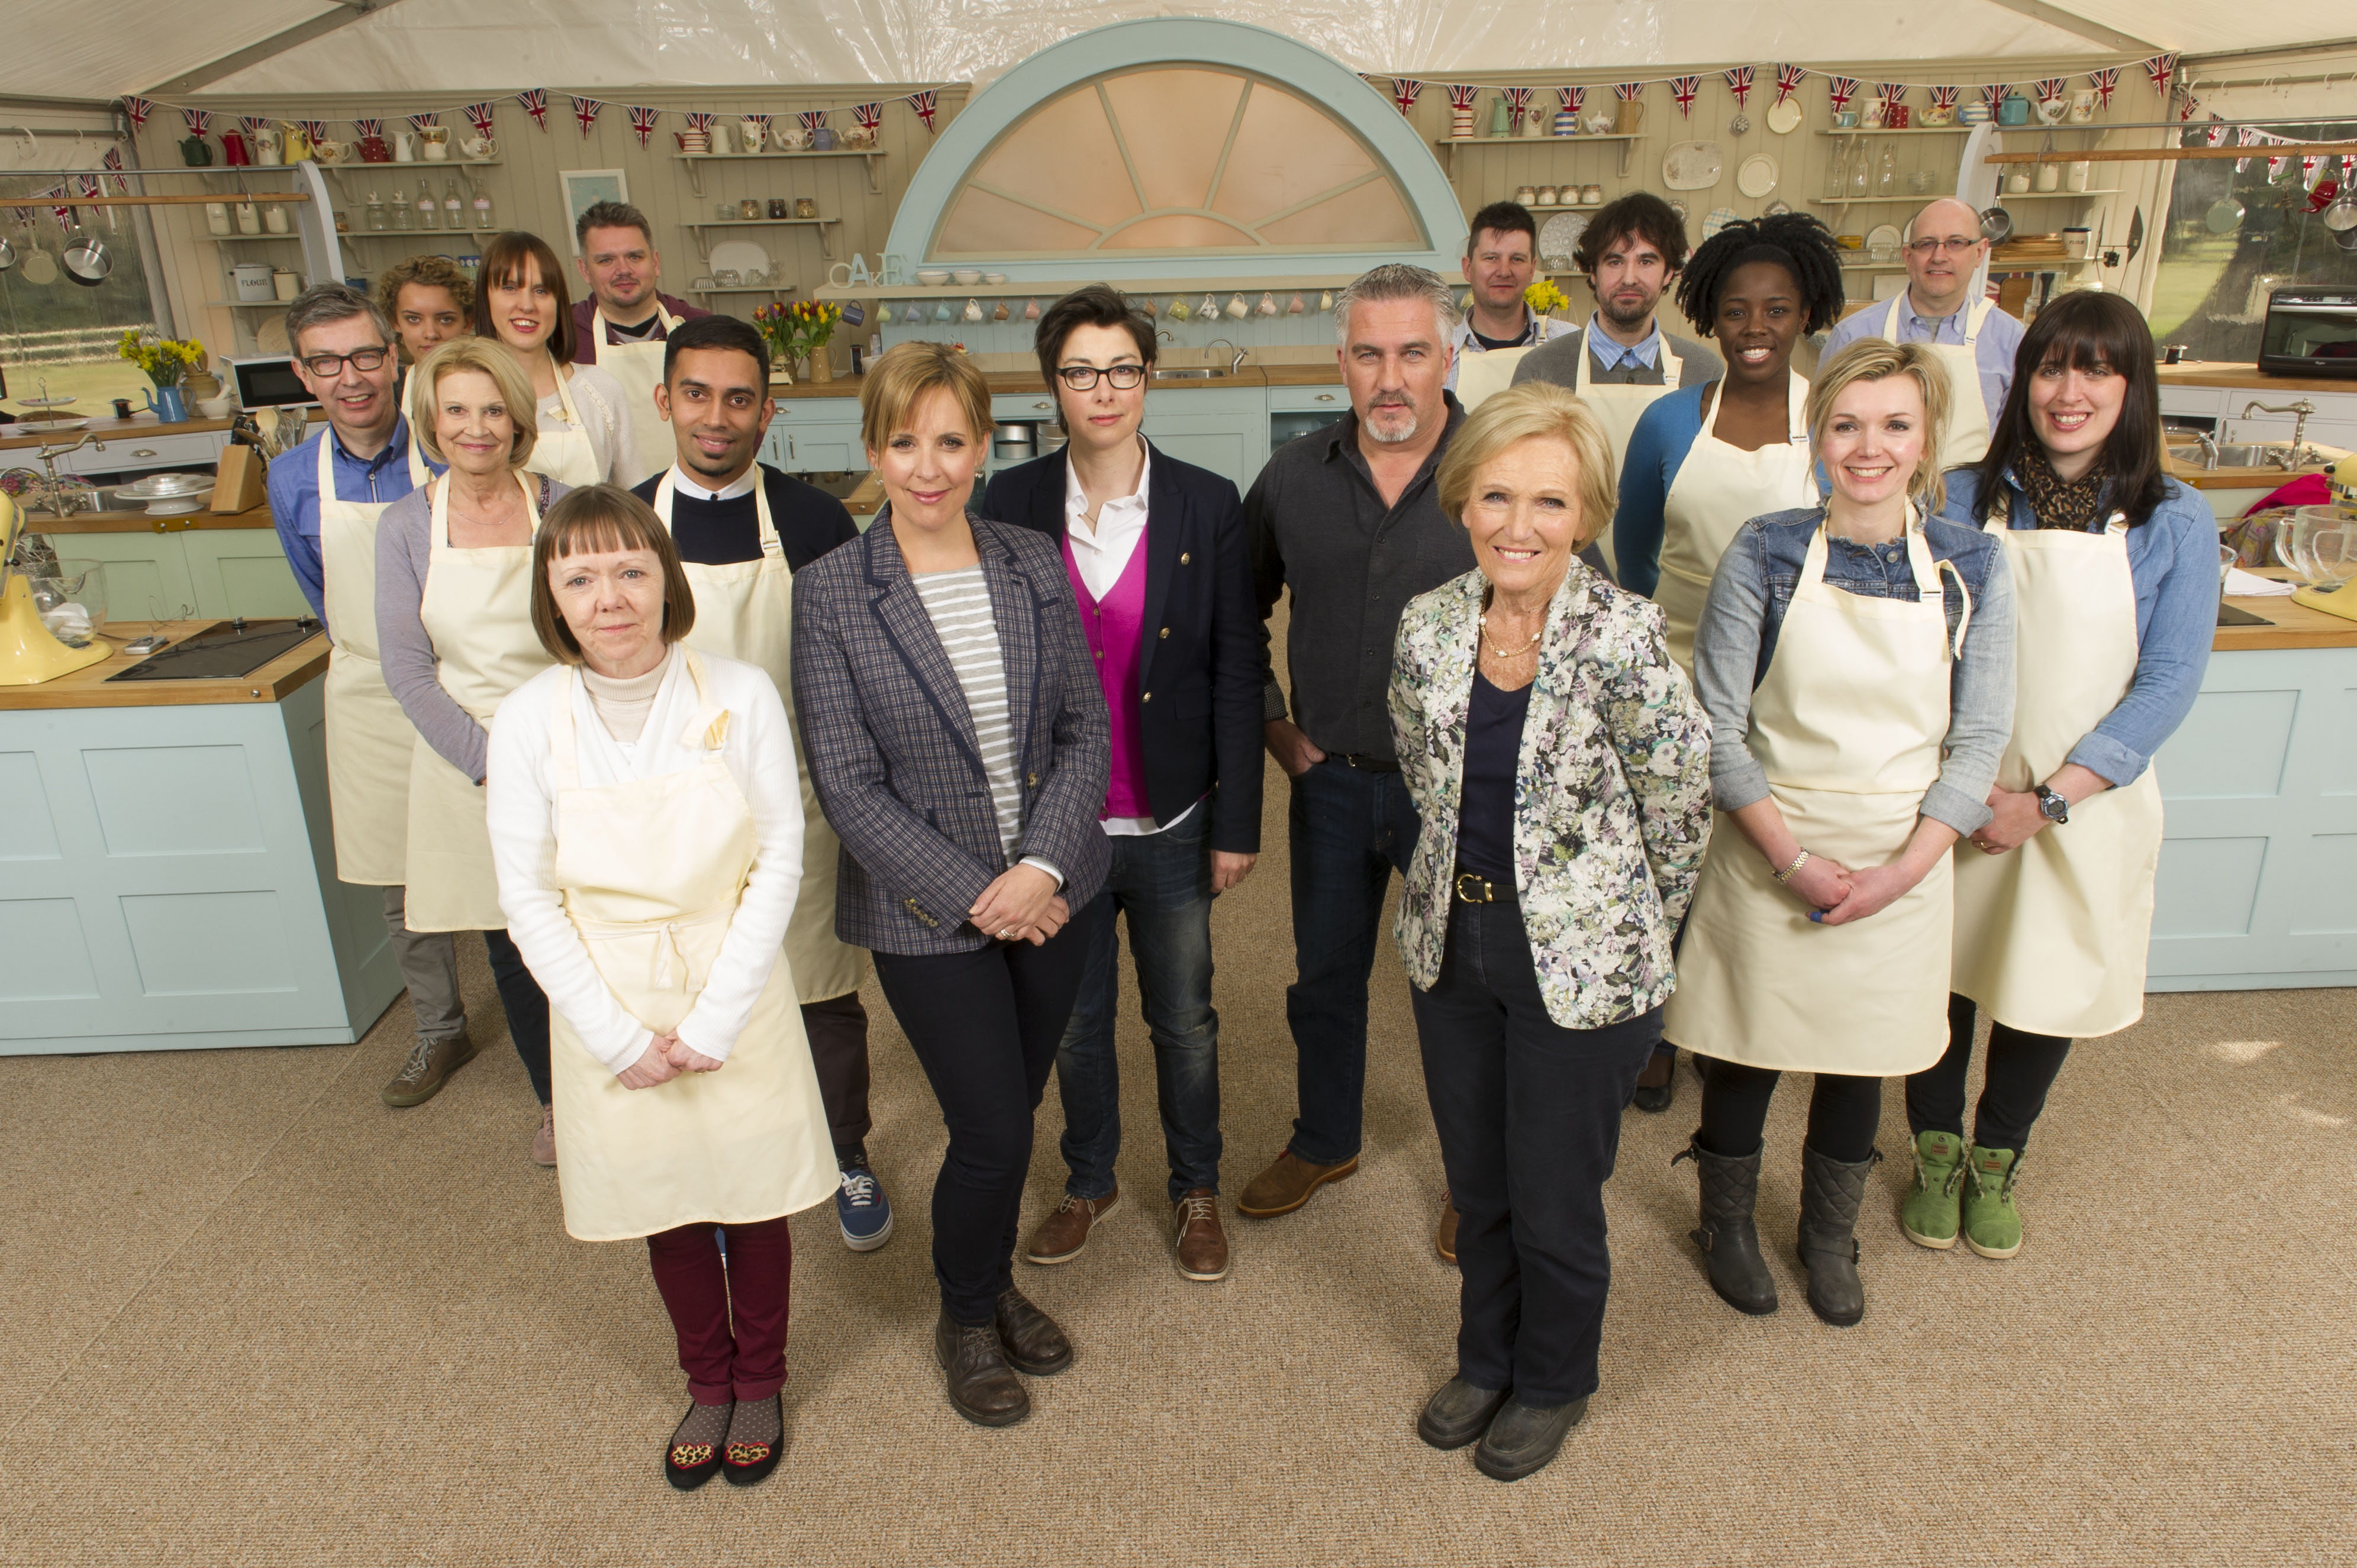 Great British Baking Show Season 4 Cast Or 2 In America Either Way Photo Courtesy Of Des Willie Love Productions